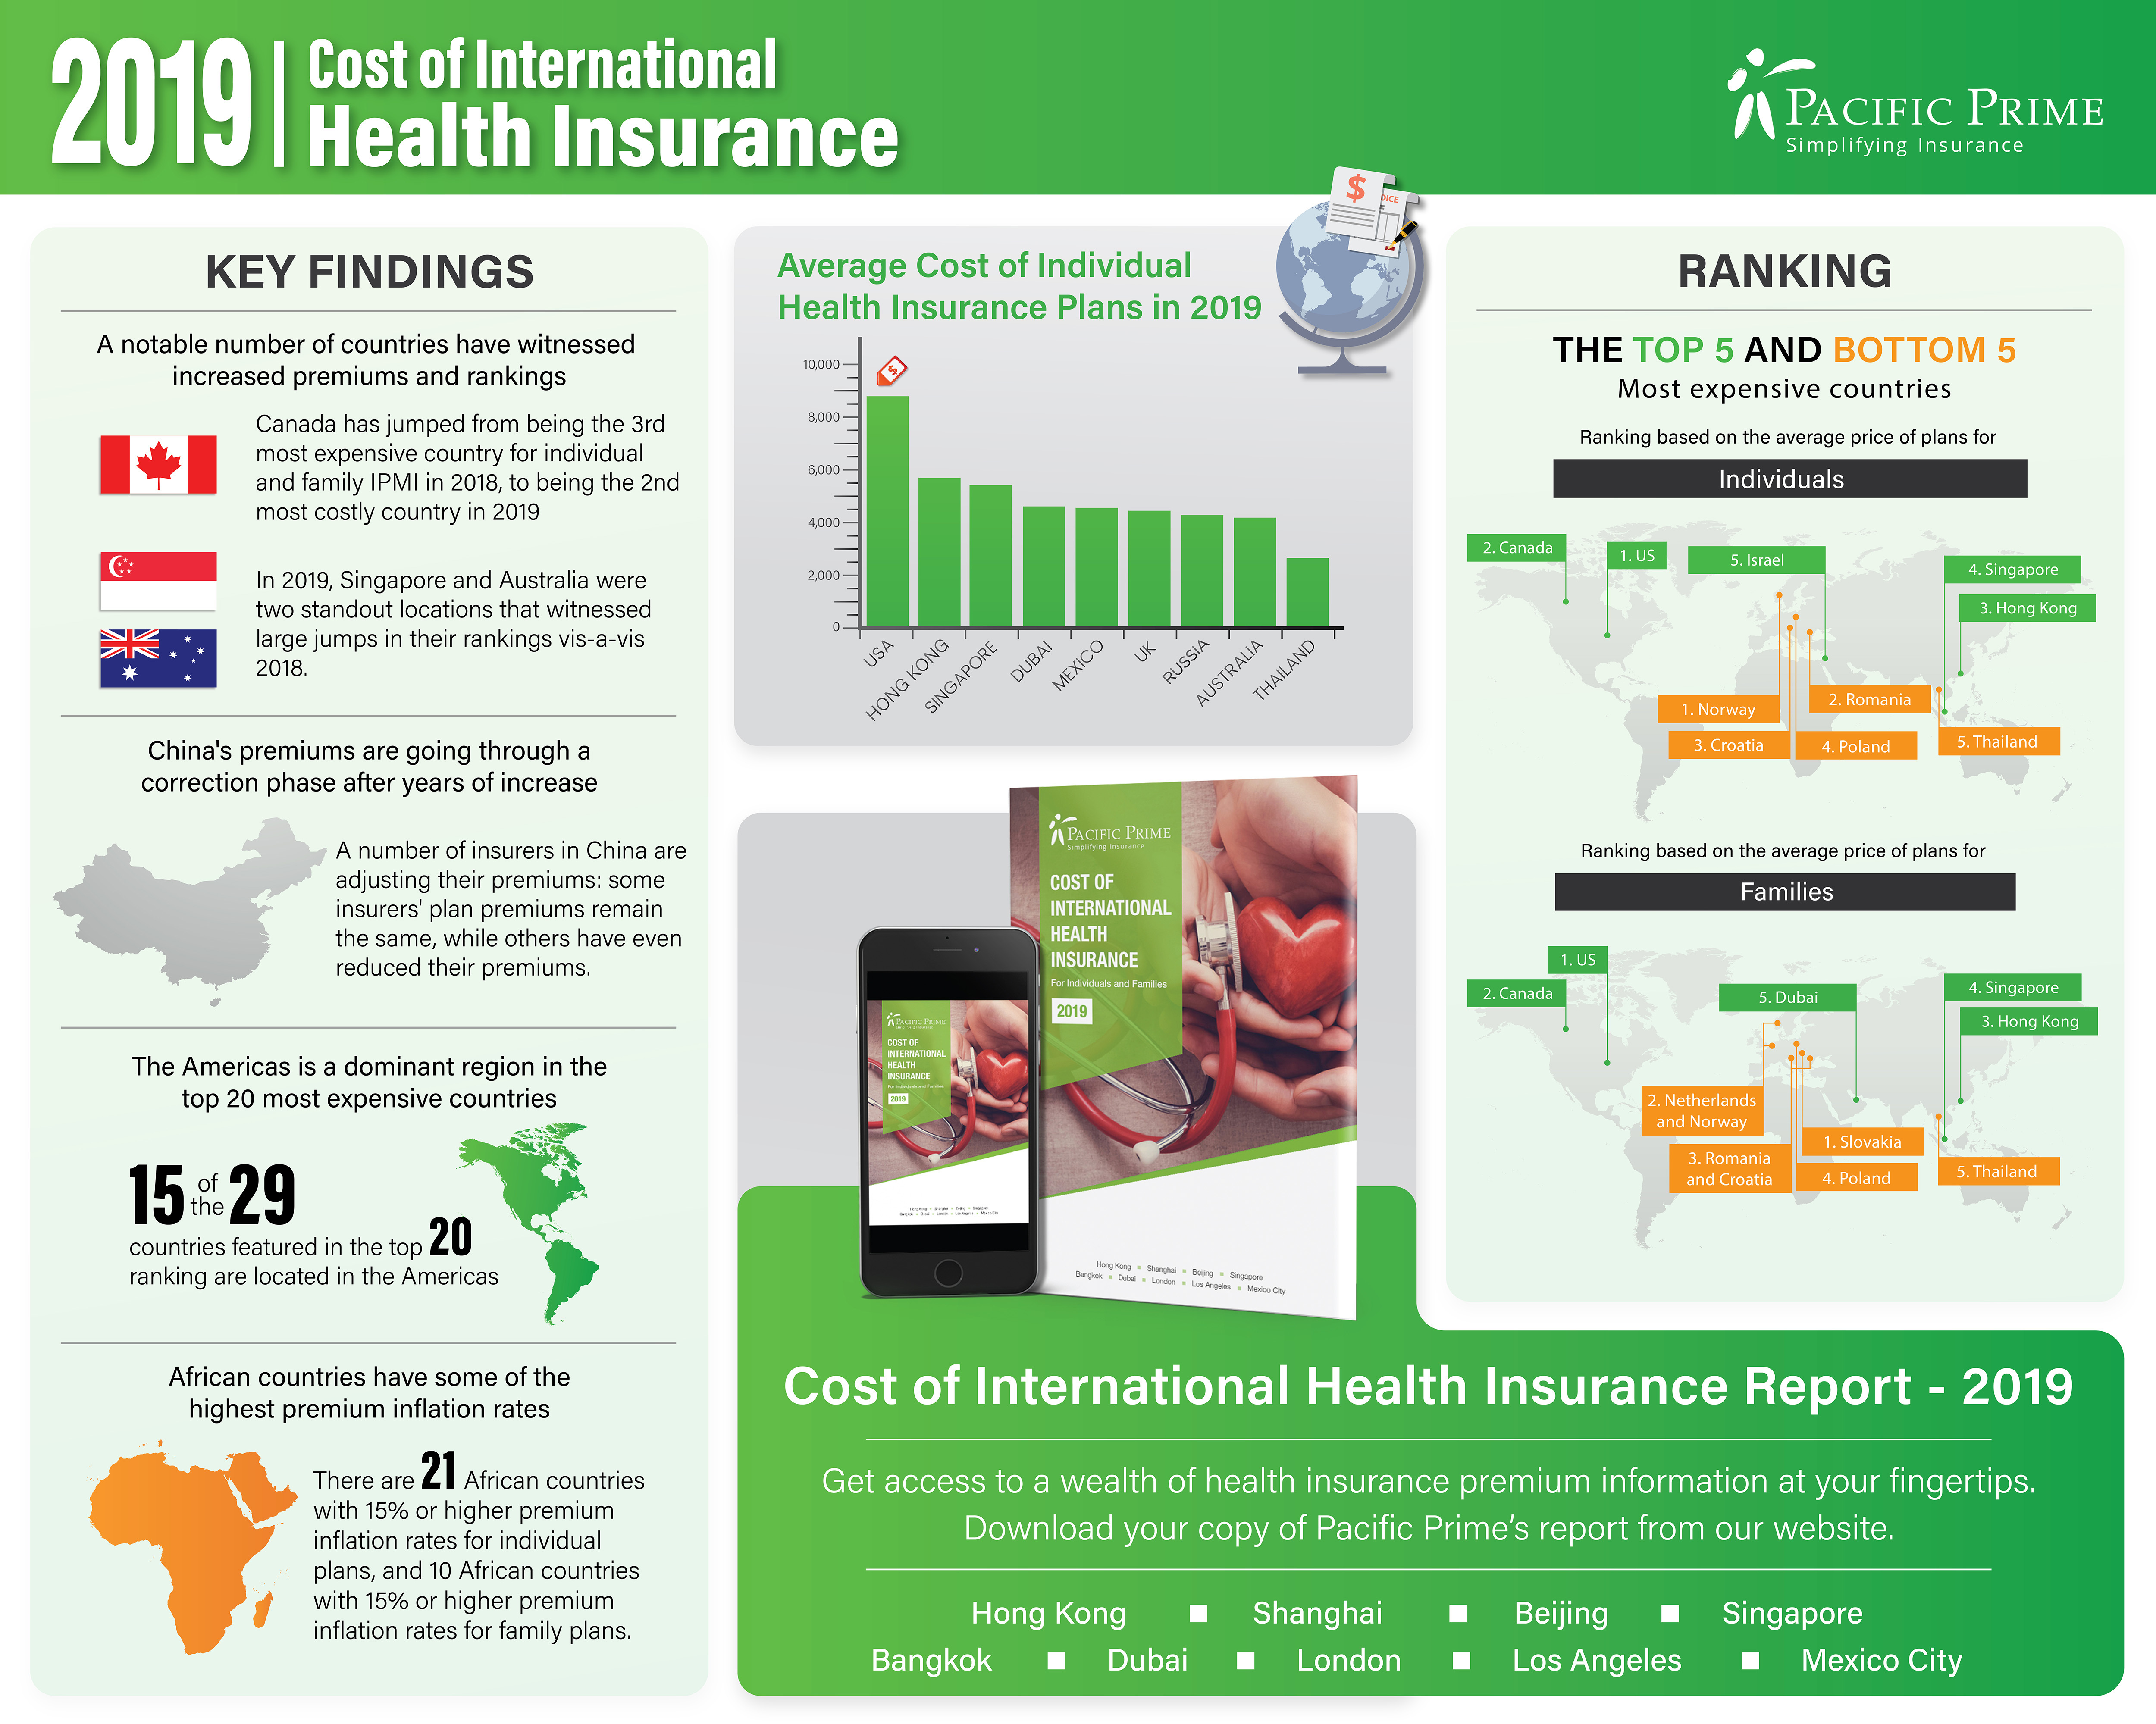 Health Insurance Premiums Are On The Rise In 97 Countries Throughout The World New Survey By Pacific Prime Finds Business Wire